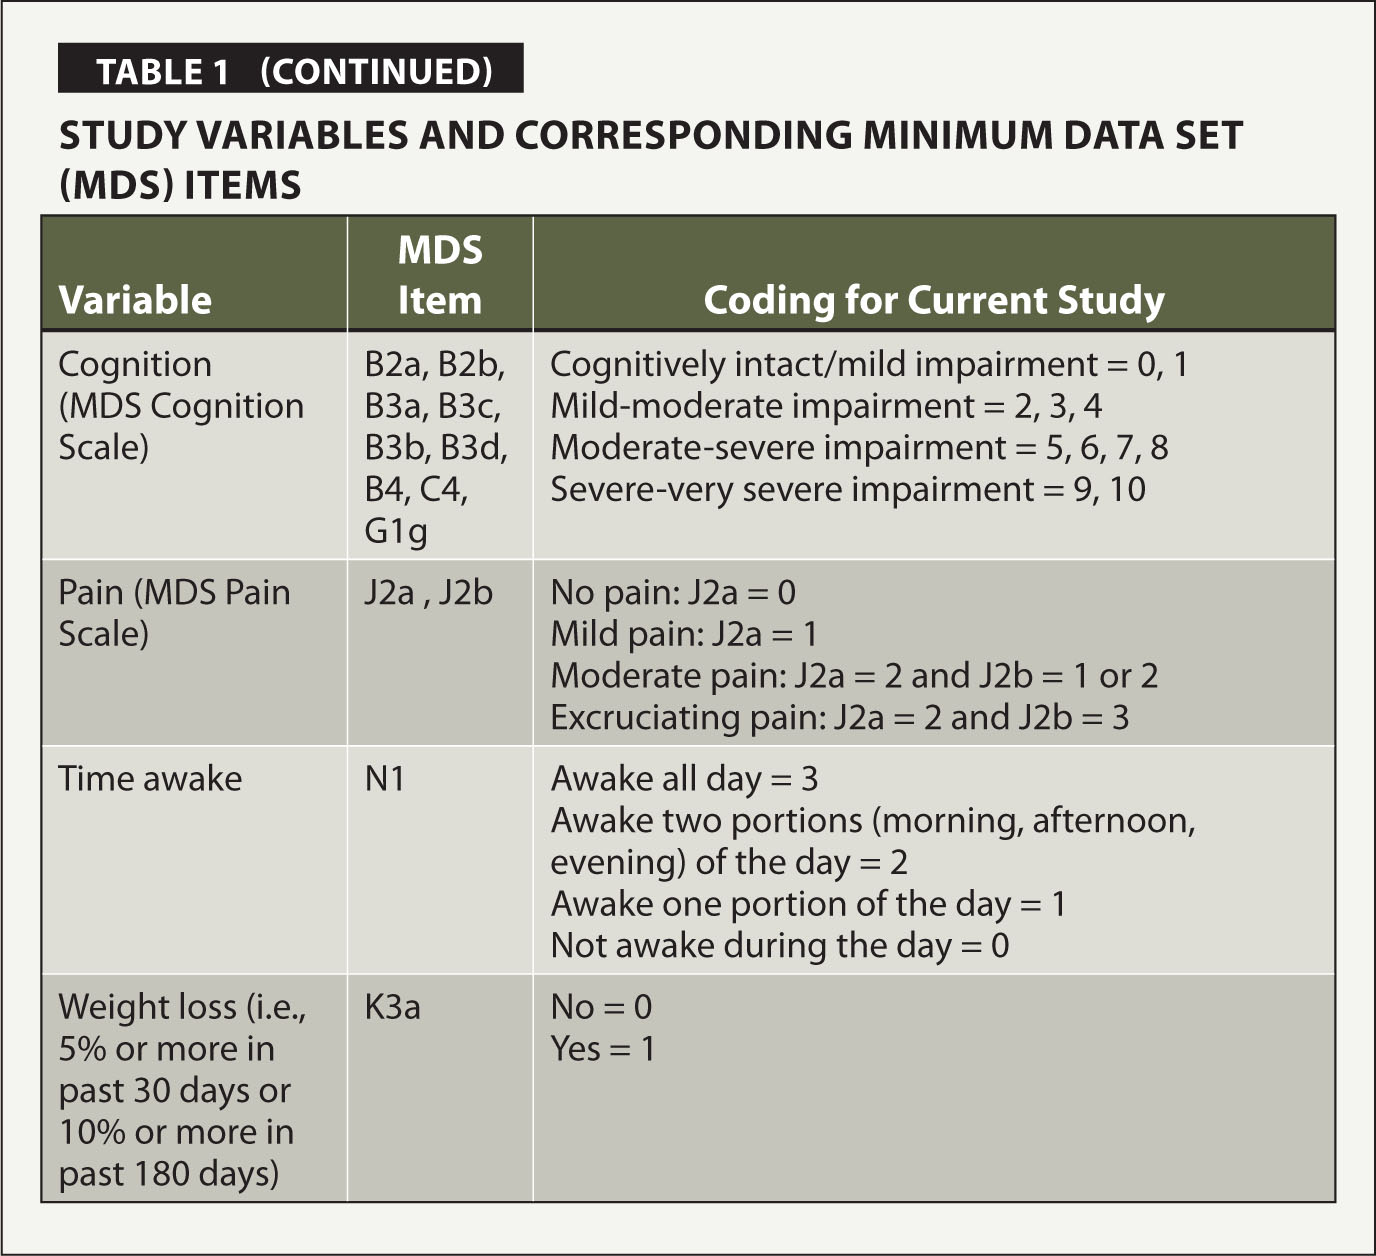 Study Variables and Corresponding Minimum Data Set (MDS) Items